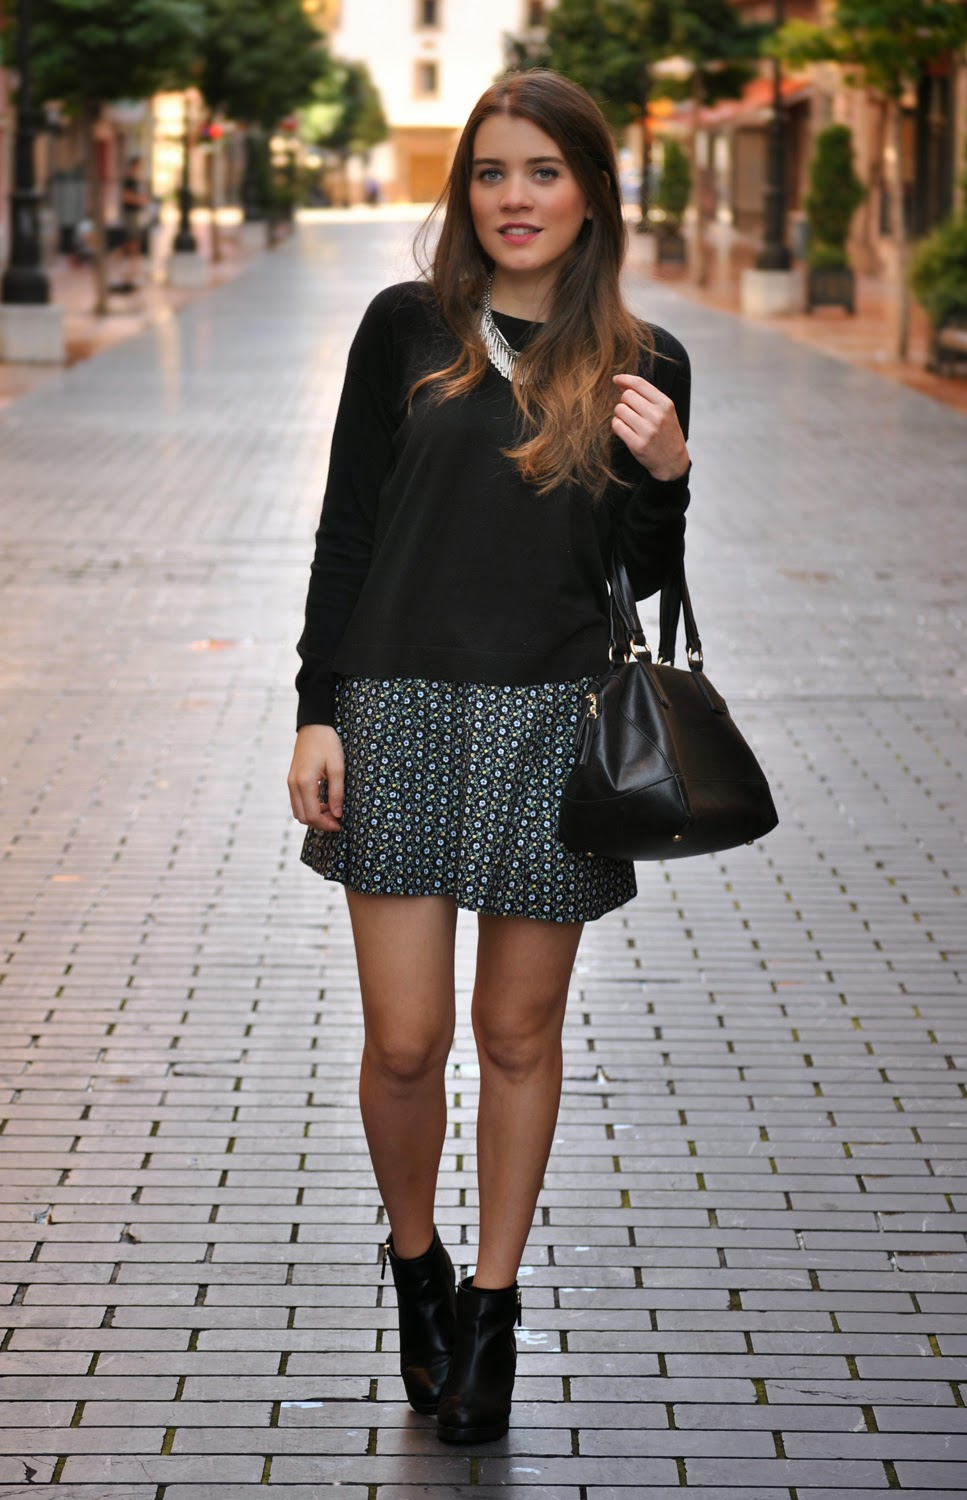 a8fa955f4e66 outfit of the day Skirt Homemade, Sweater Mango, Shoes Pull and Bear,  Necklace